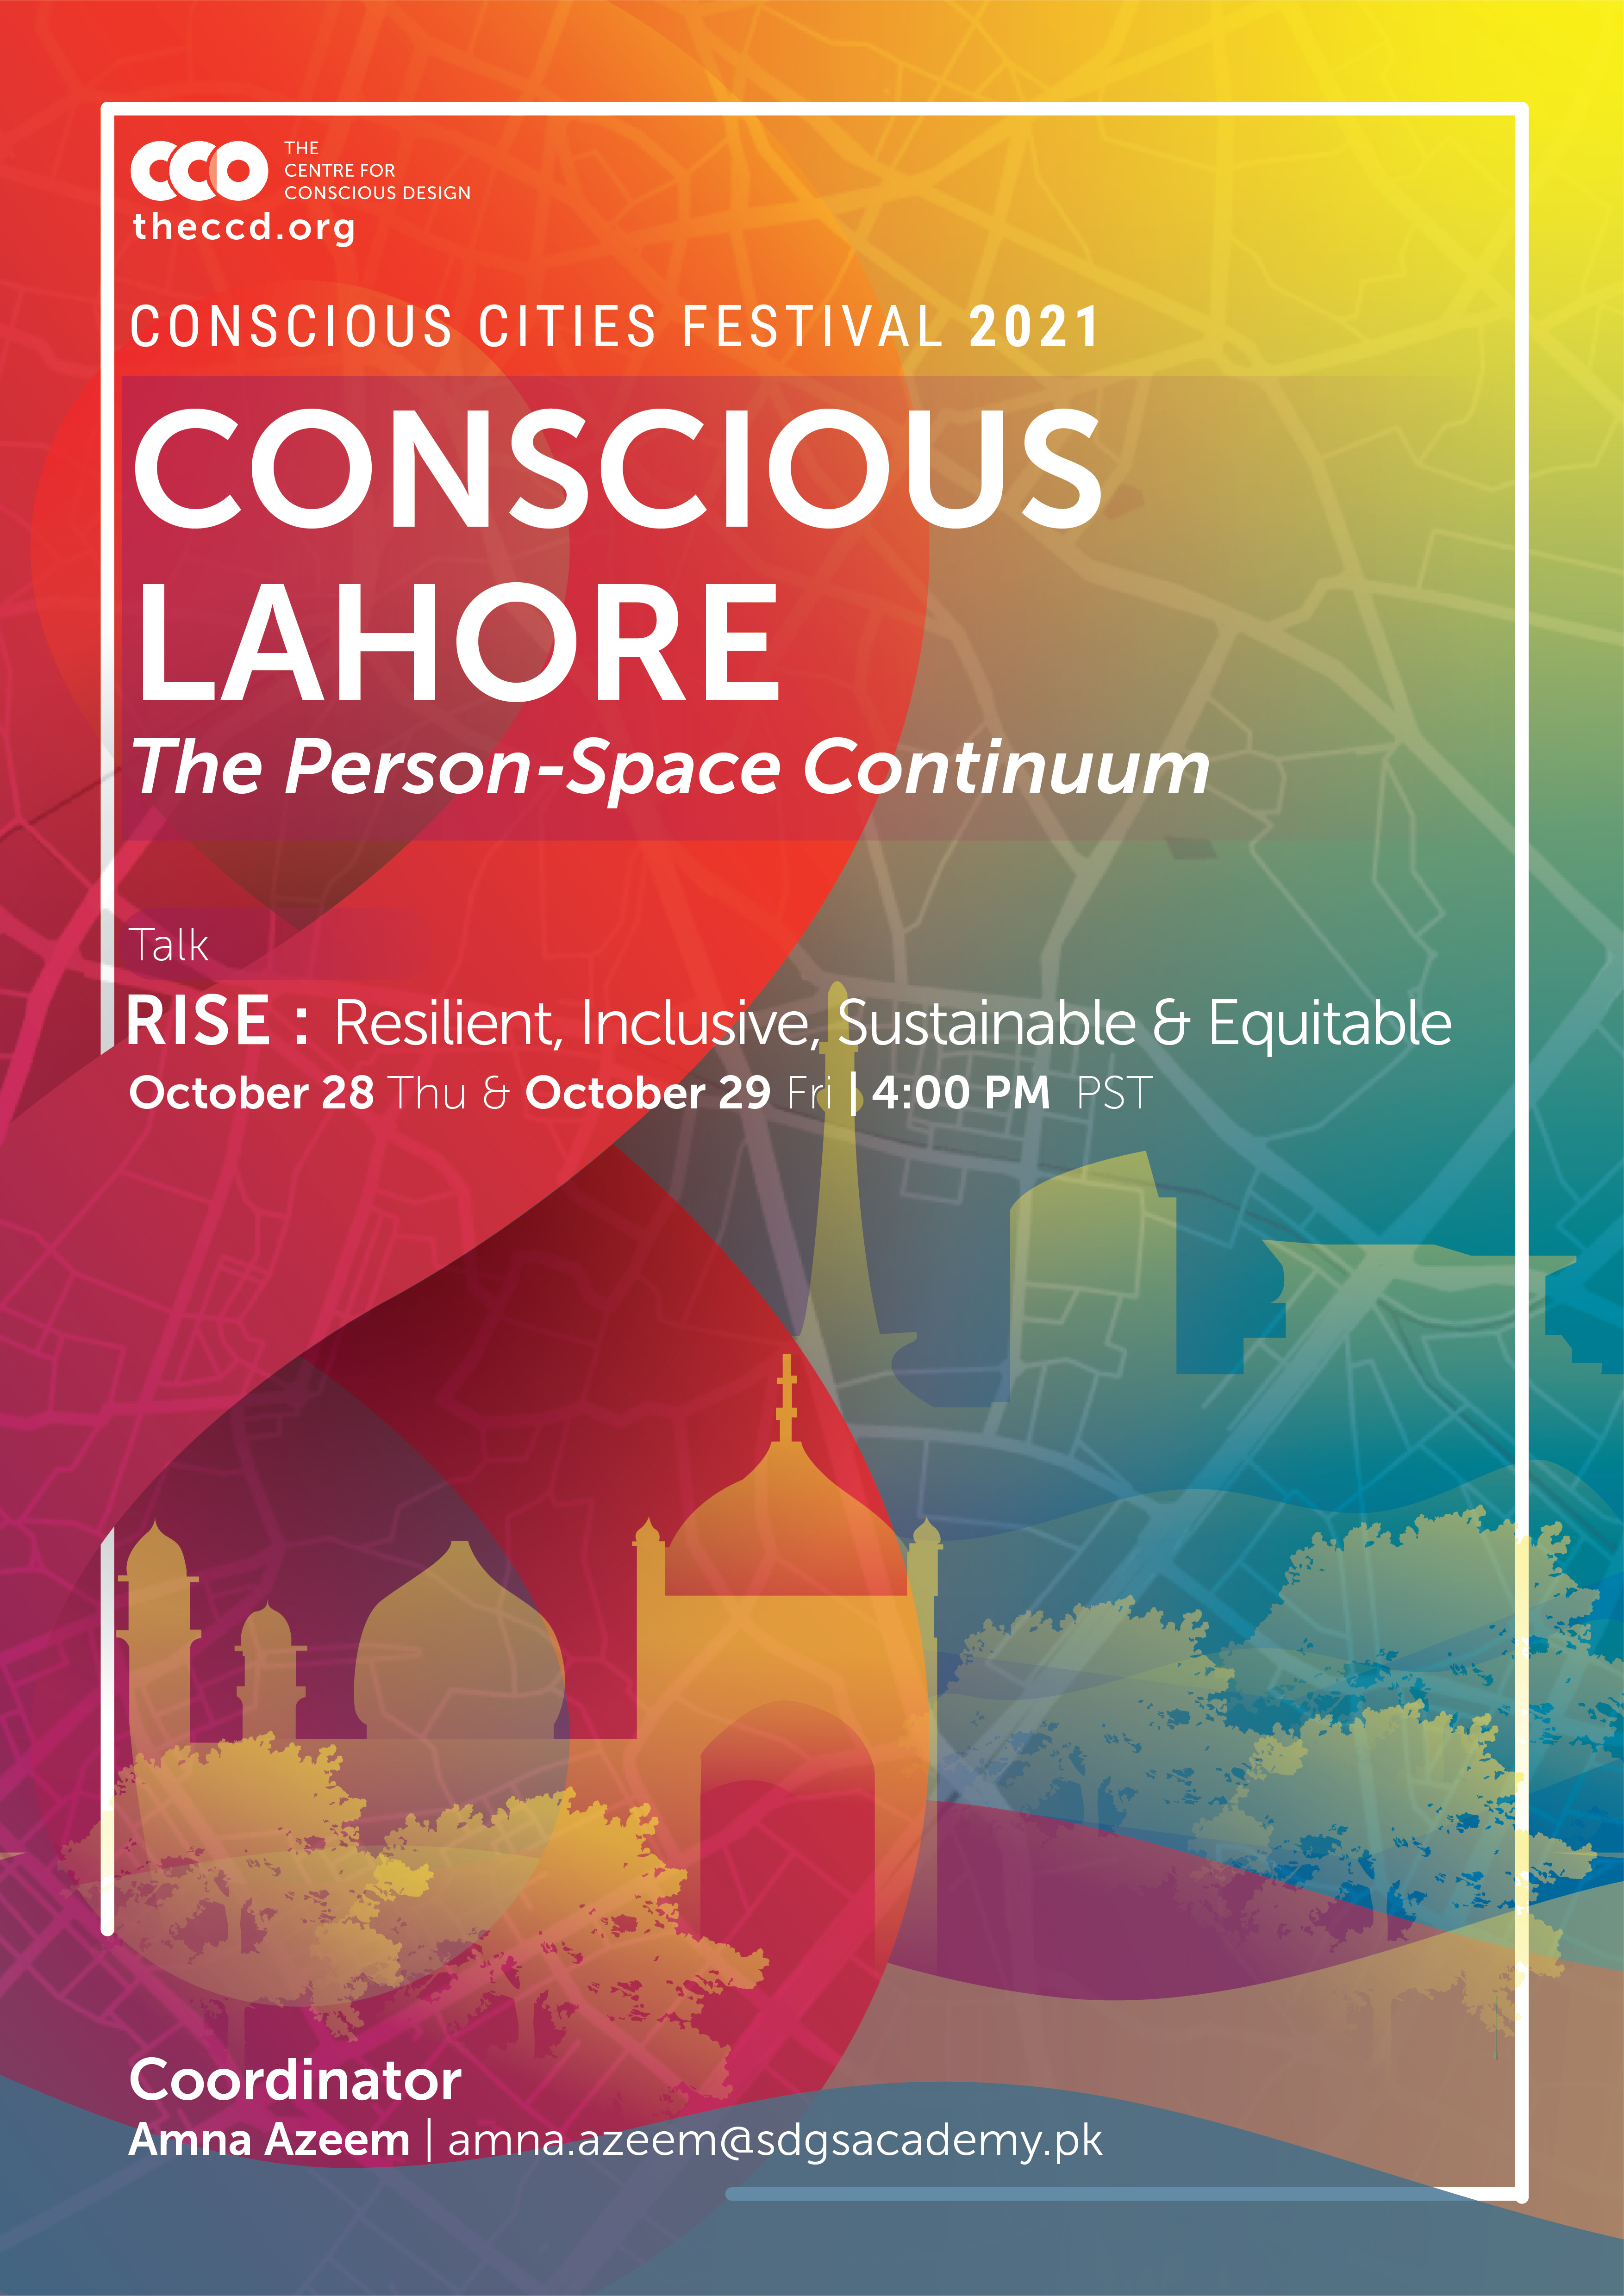 RISE : Resilient, Inclusive, Sustainable & Equitable Lahore featured Image